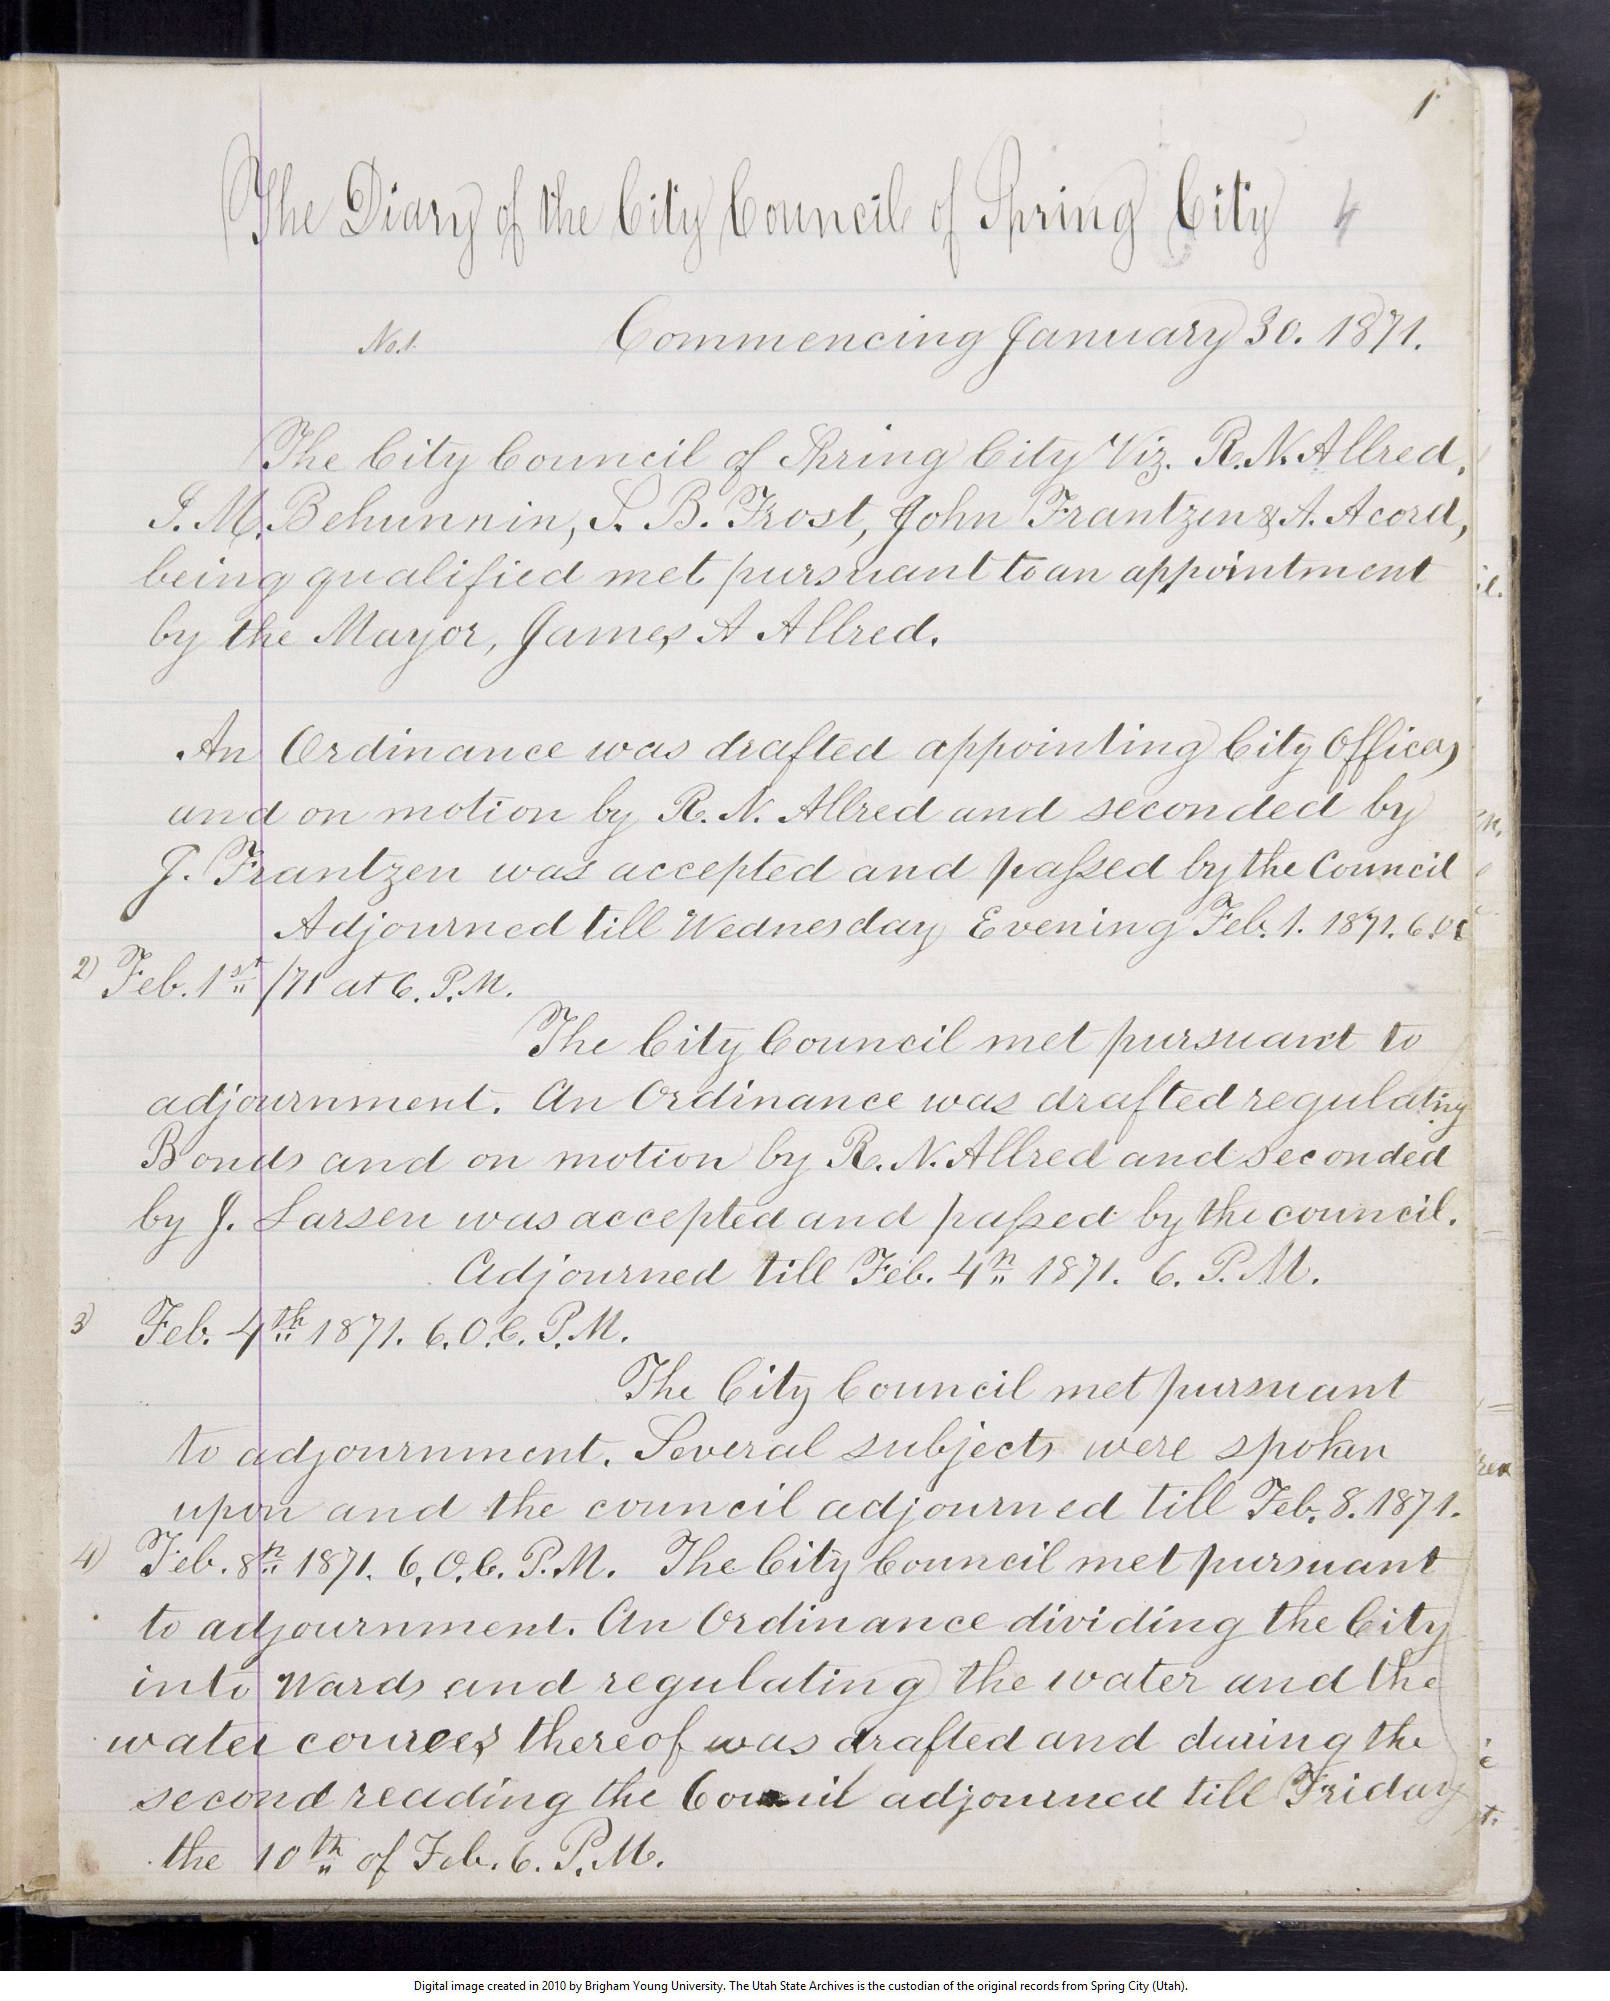 """This is a scan of a the left-hand page of a manuscript document titled """"The Diary of the City of Council of Spring City."""""""